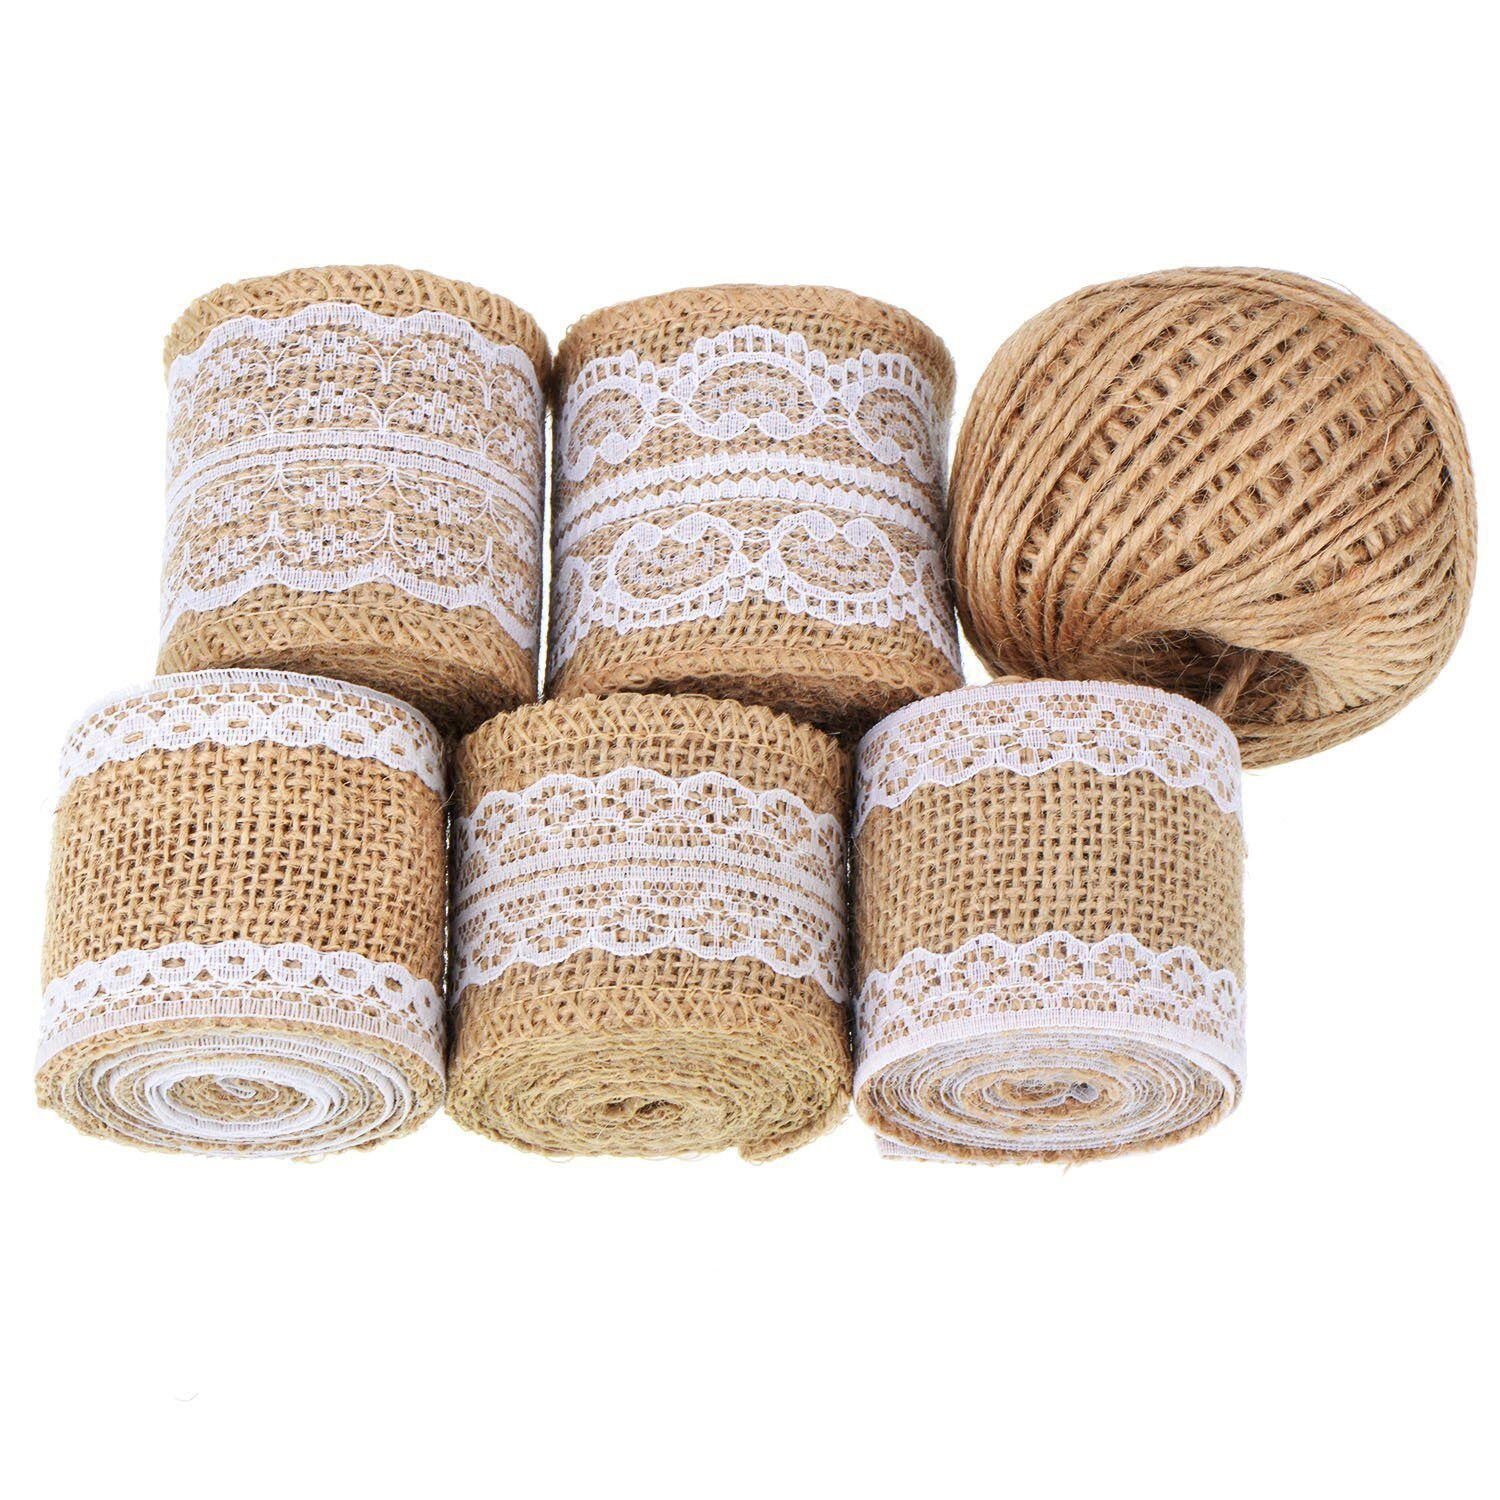 Natural Burlap Rolls With Lace And Jute Twine For Handmade